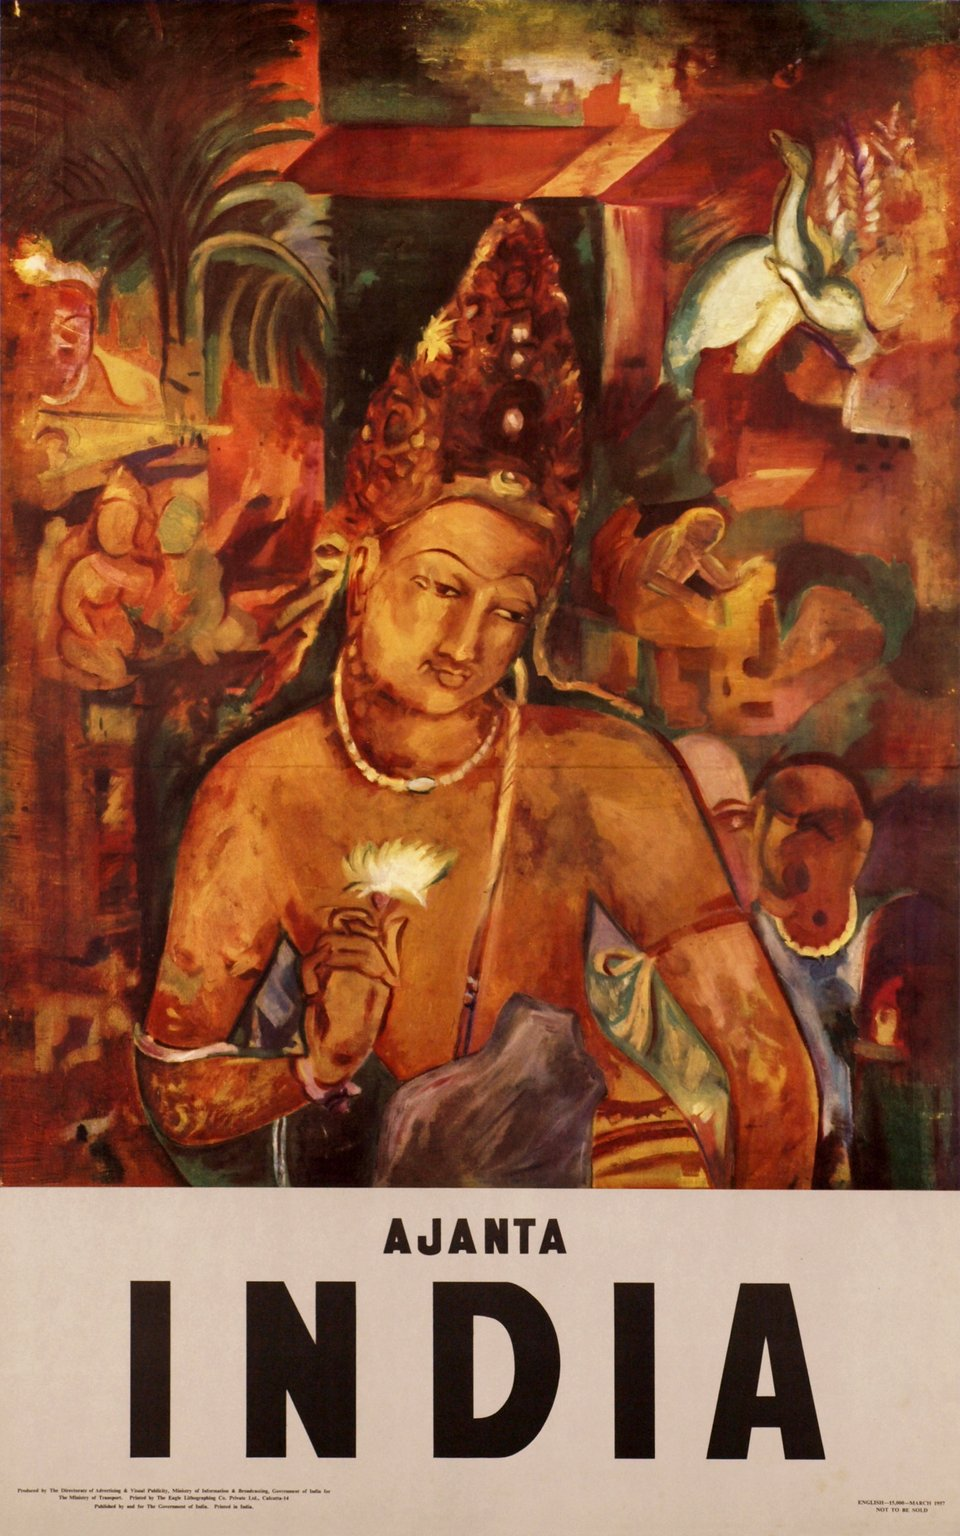 Ajanta India – Affiche ancienne –  ANONYME – 1957